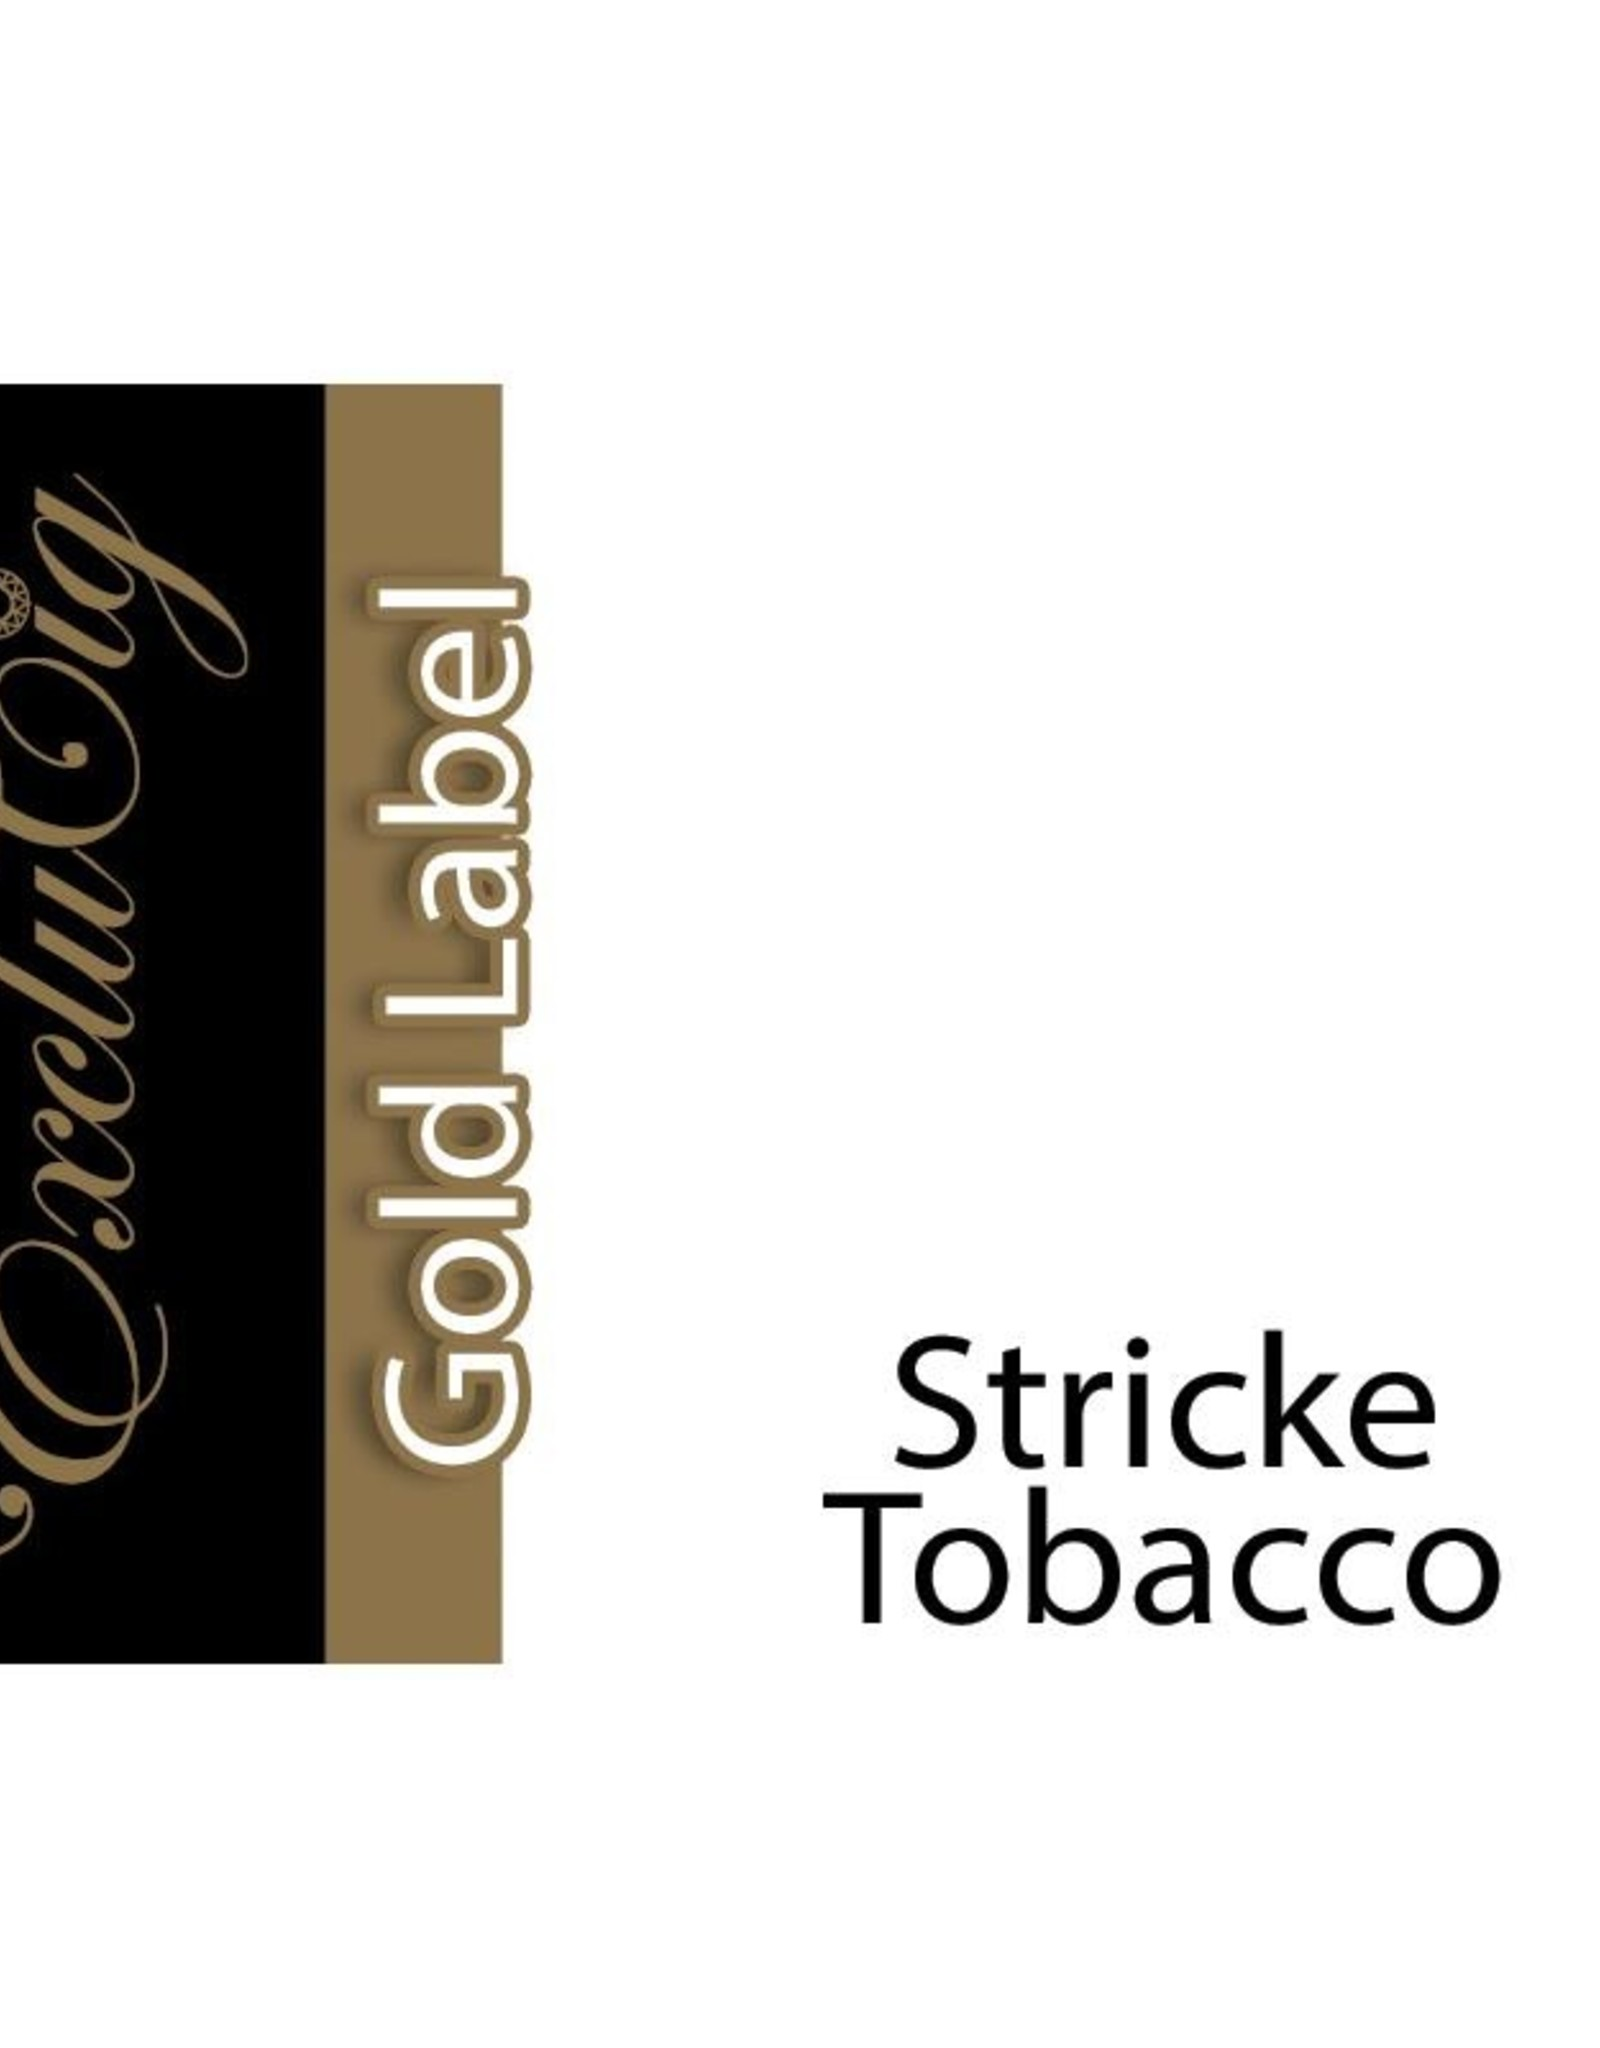 Exclucig Exclucig Gold Label E-liquid Stricke Tobacco 12 mg Nicotine